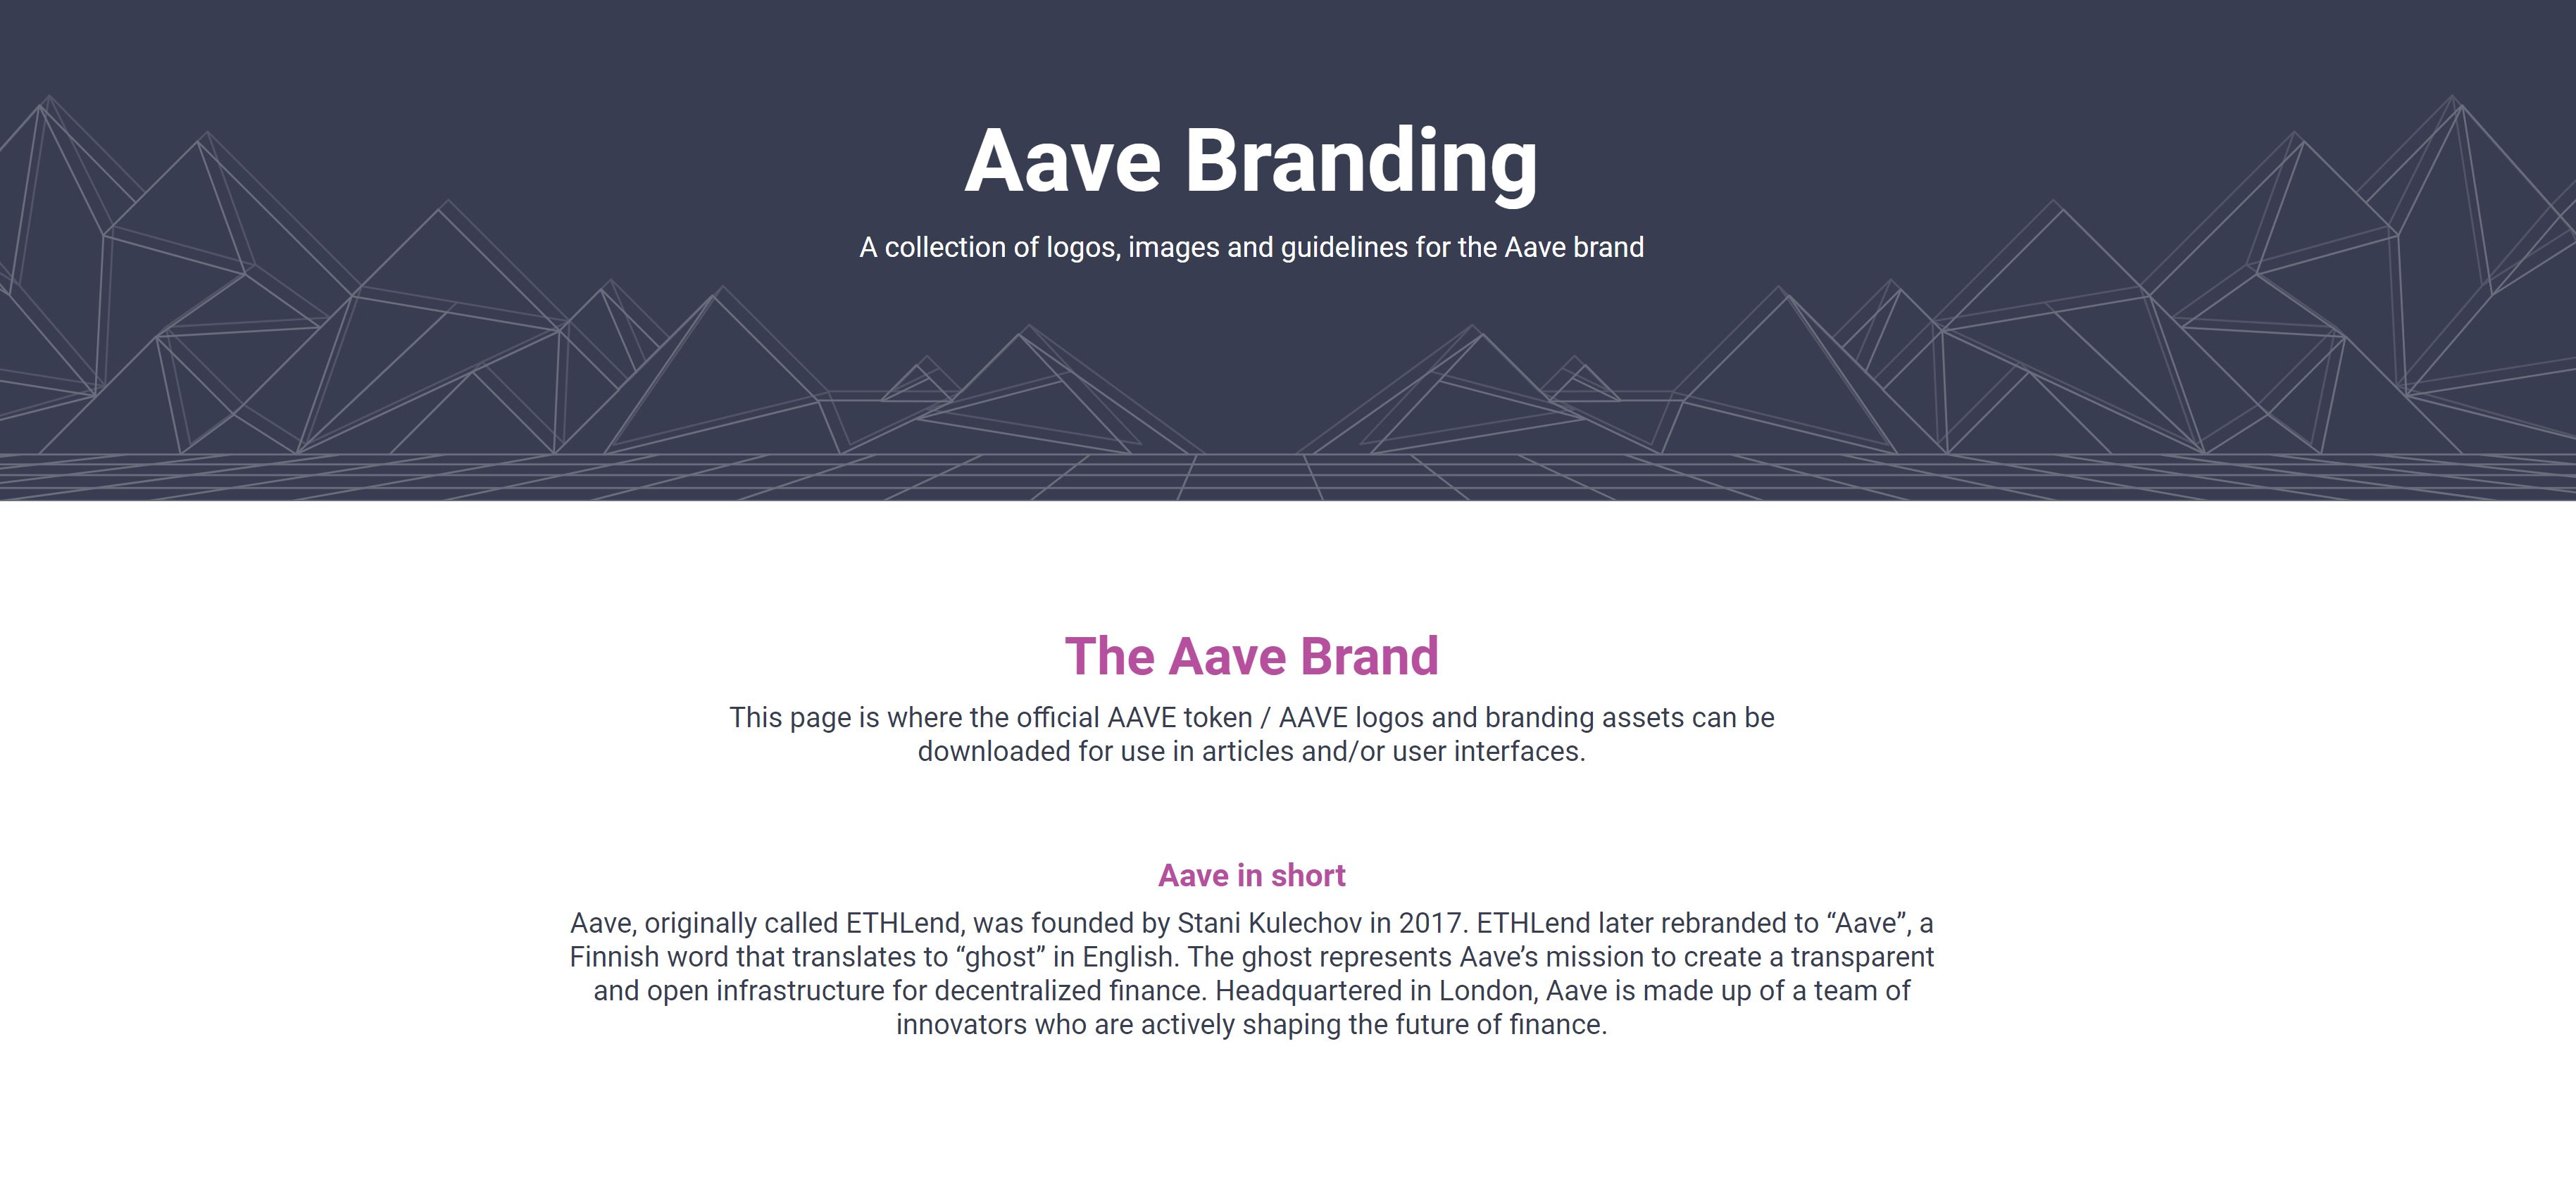 Aave branding overview